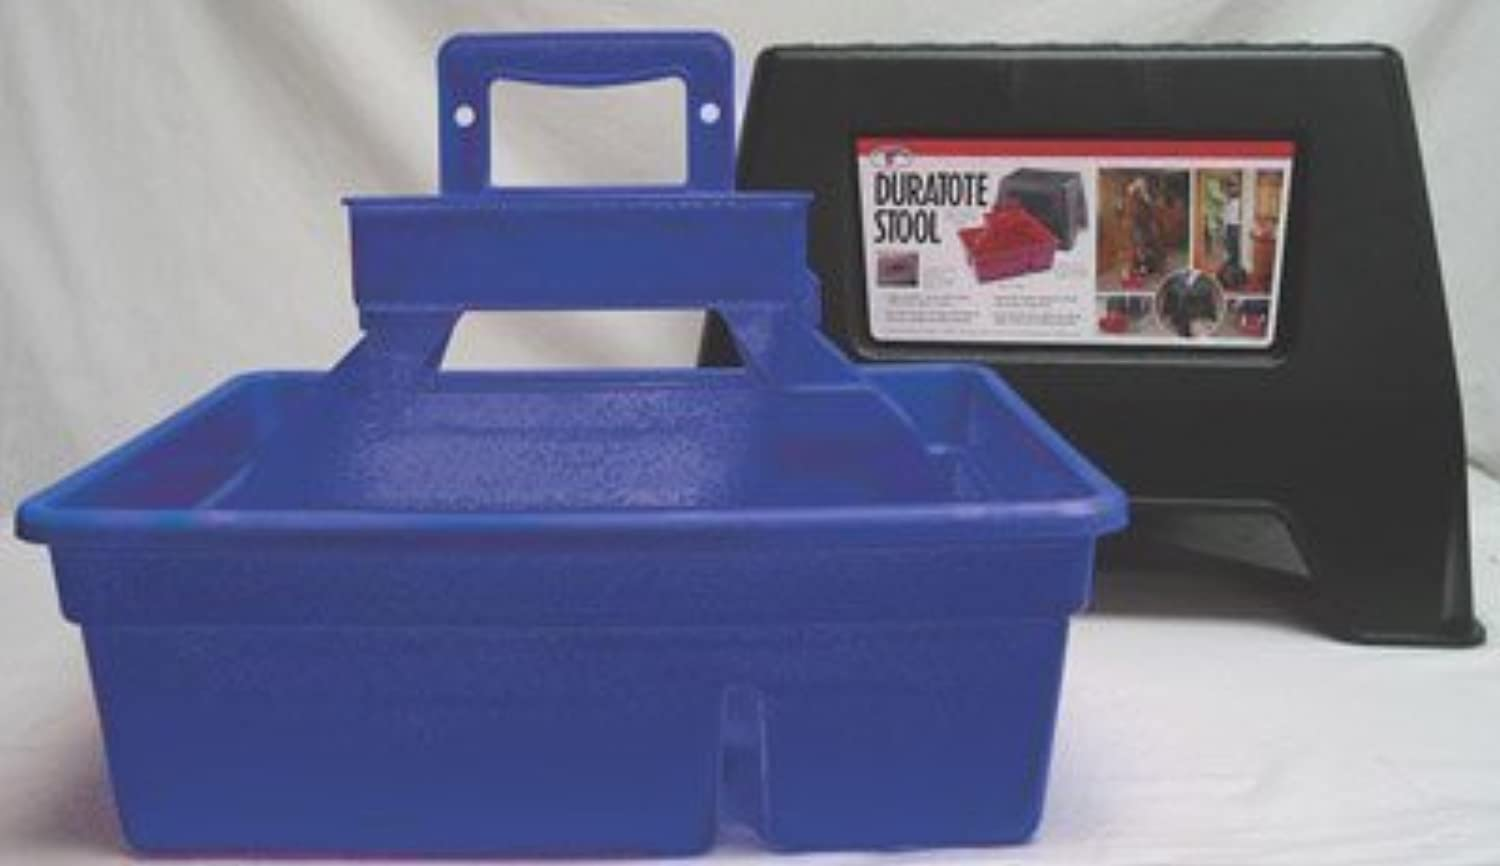 Duratote Step Stool bluee by Miller